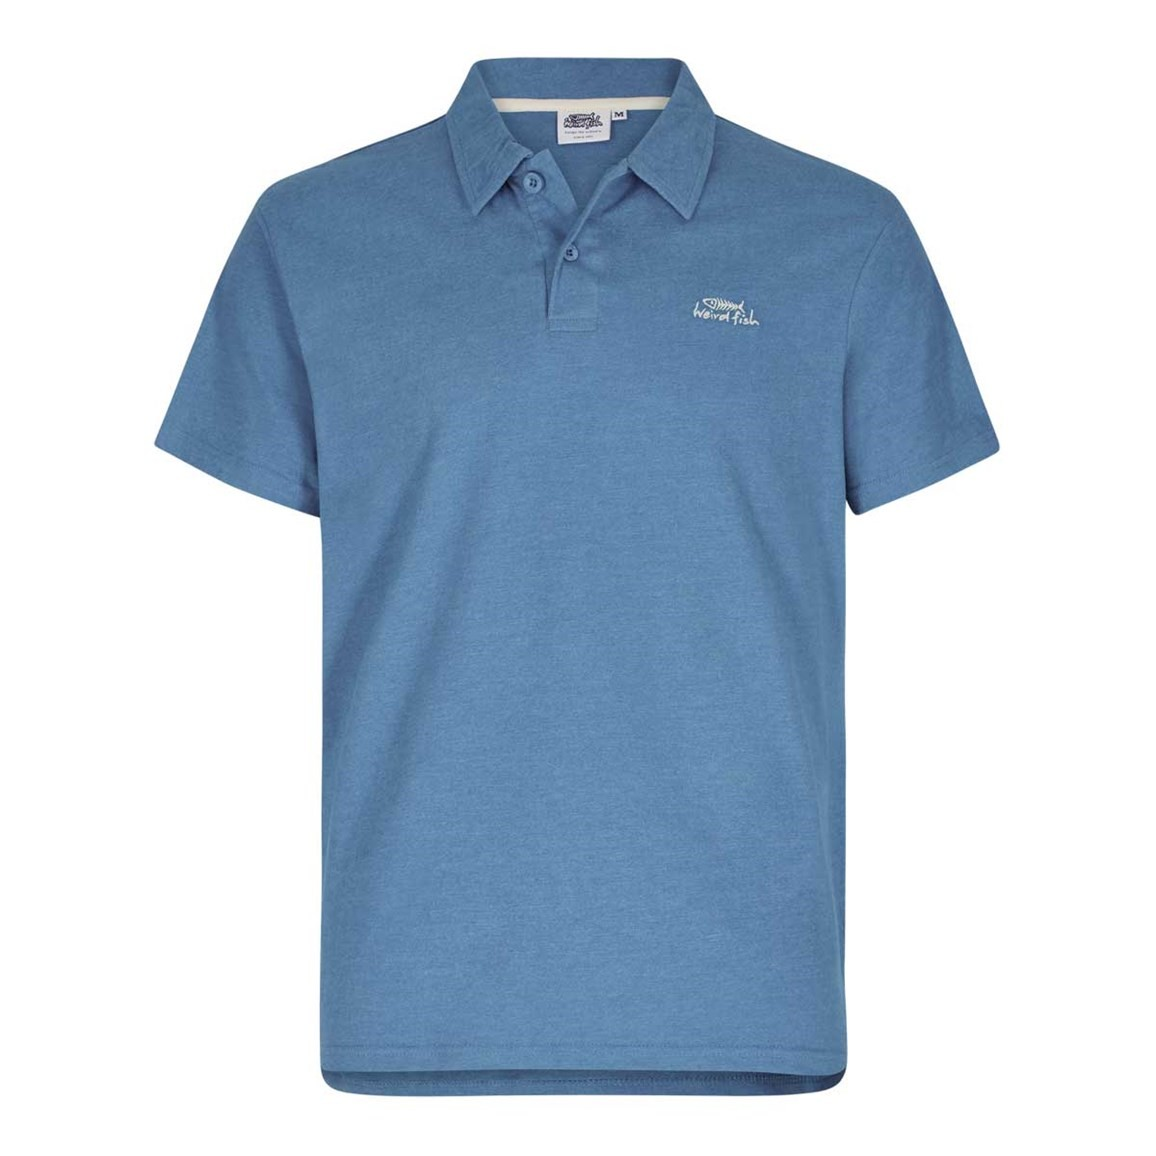 Weird fish andy embroidered logo jersey polo shirt ebay for Logo fishing shirts